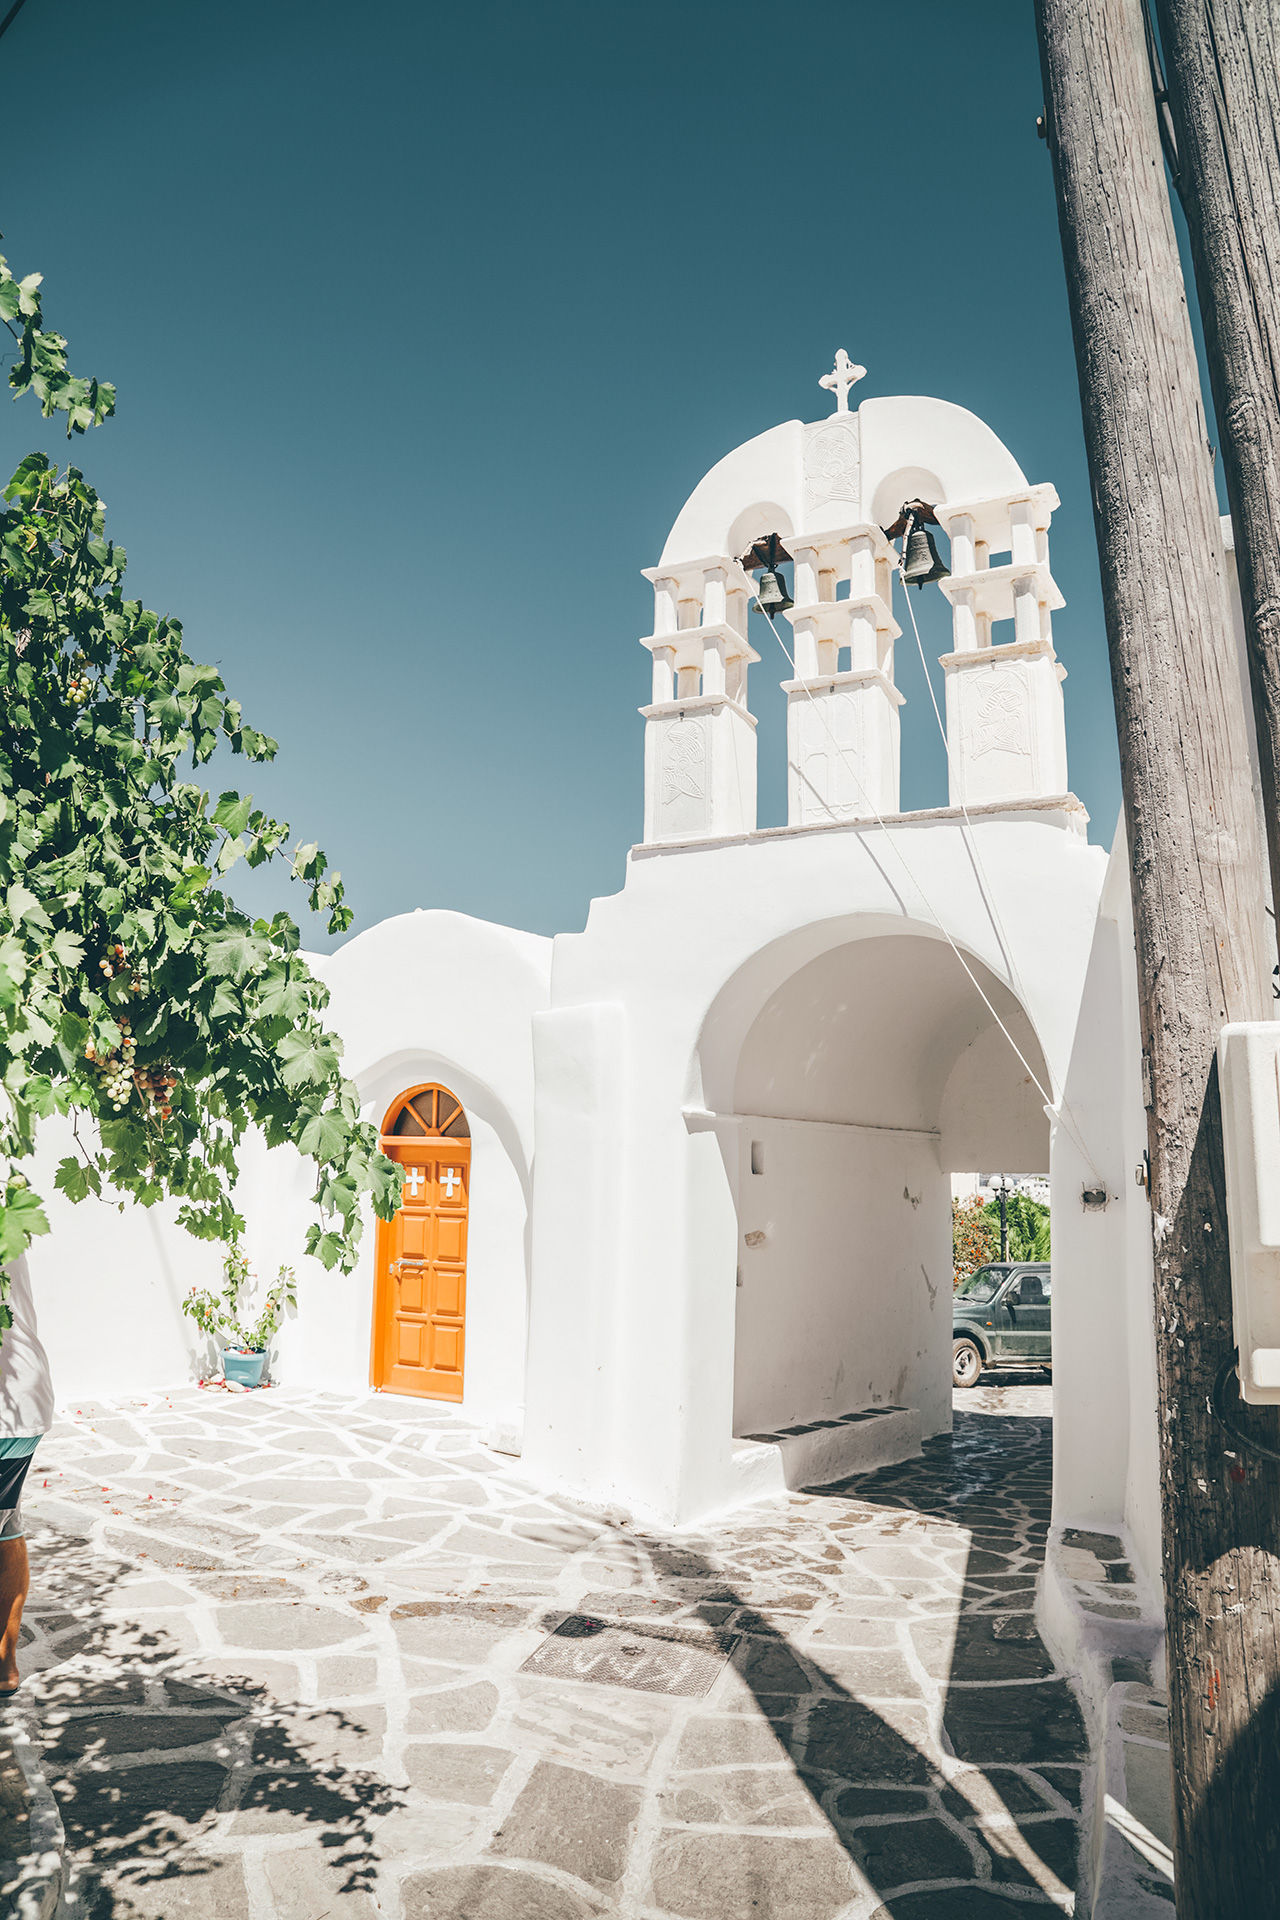 View of church and cycladic alleyway in Prodromos village